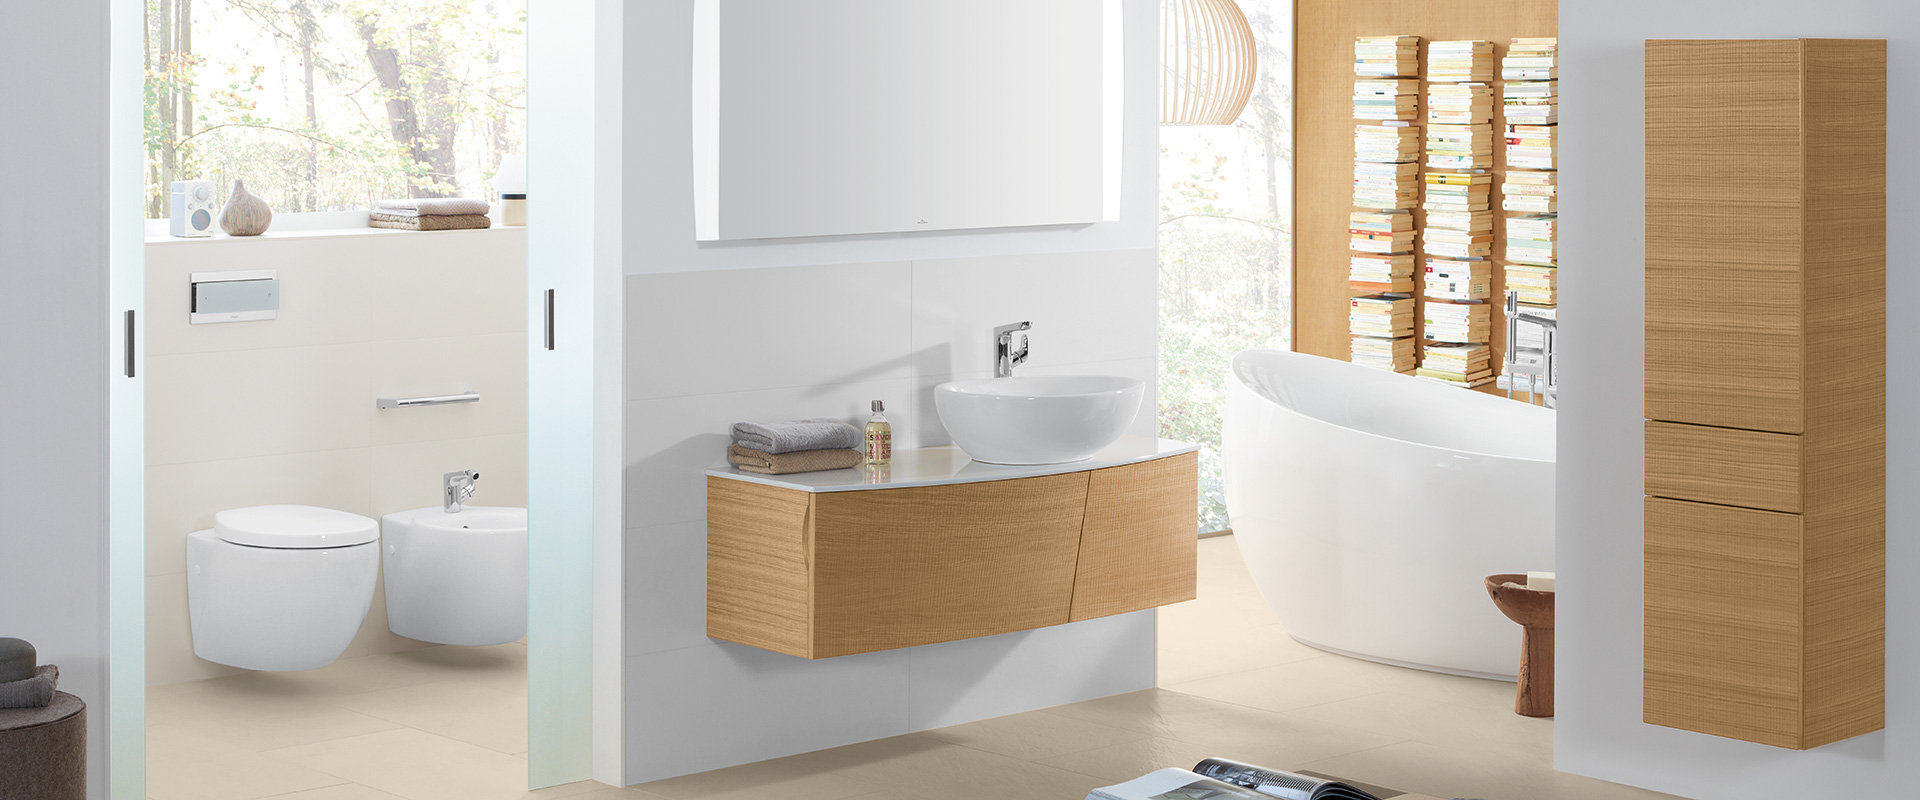 Aveo new generation collection by Villeroy & Boch - Natural ...